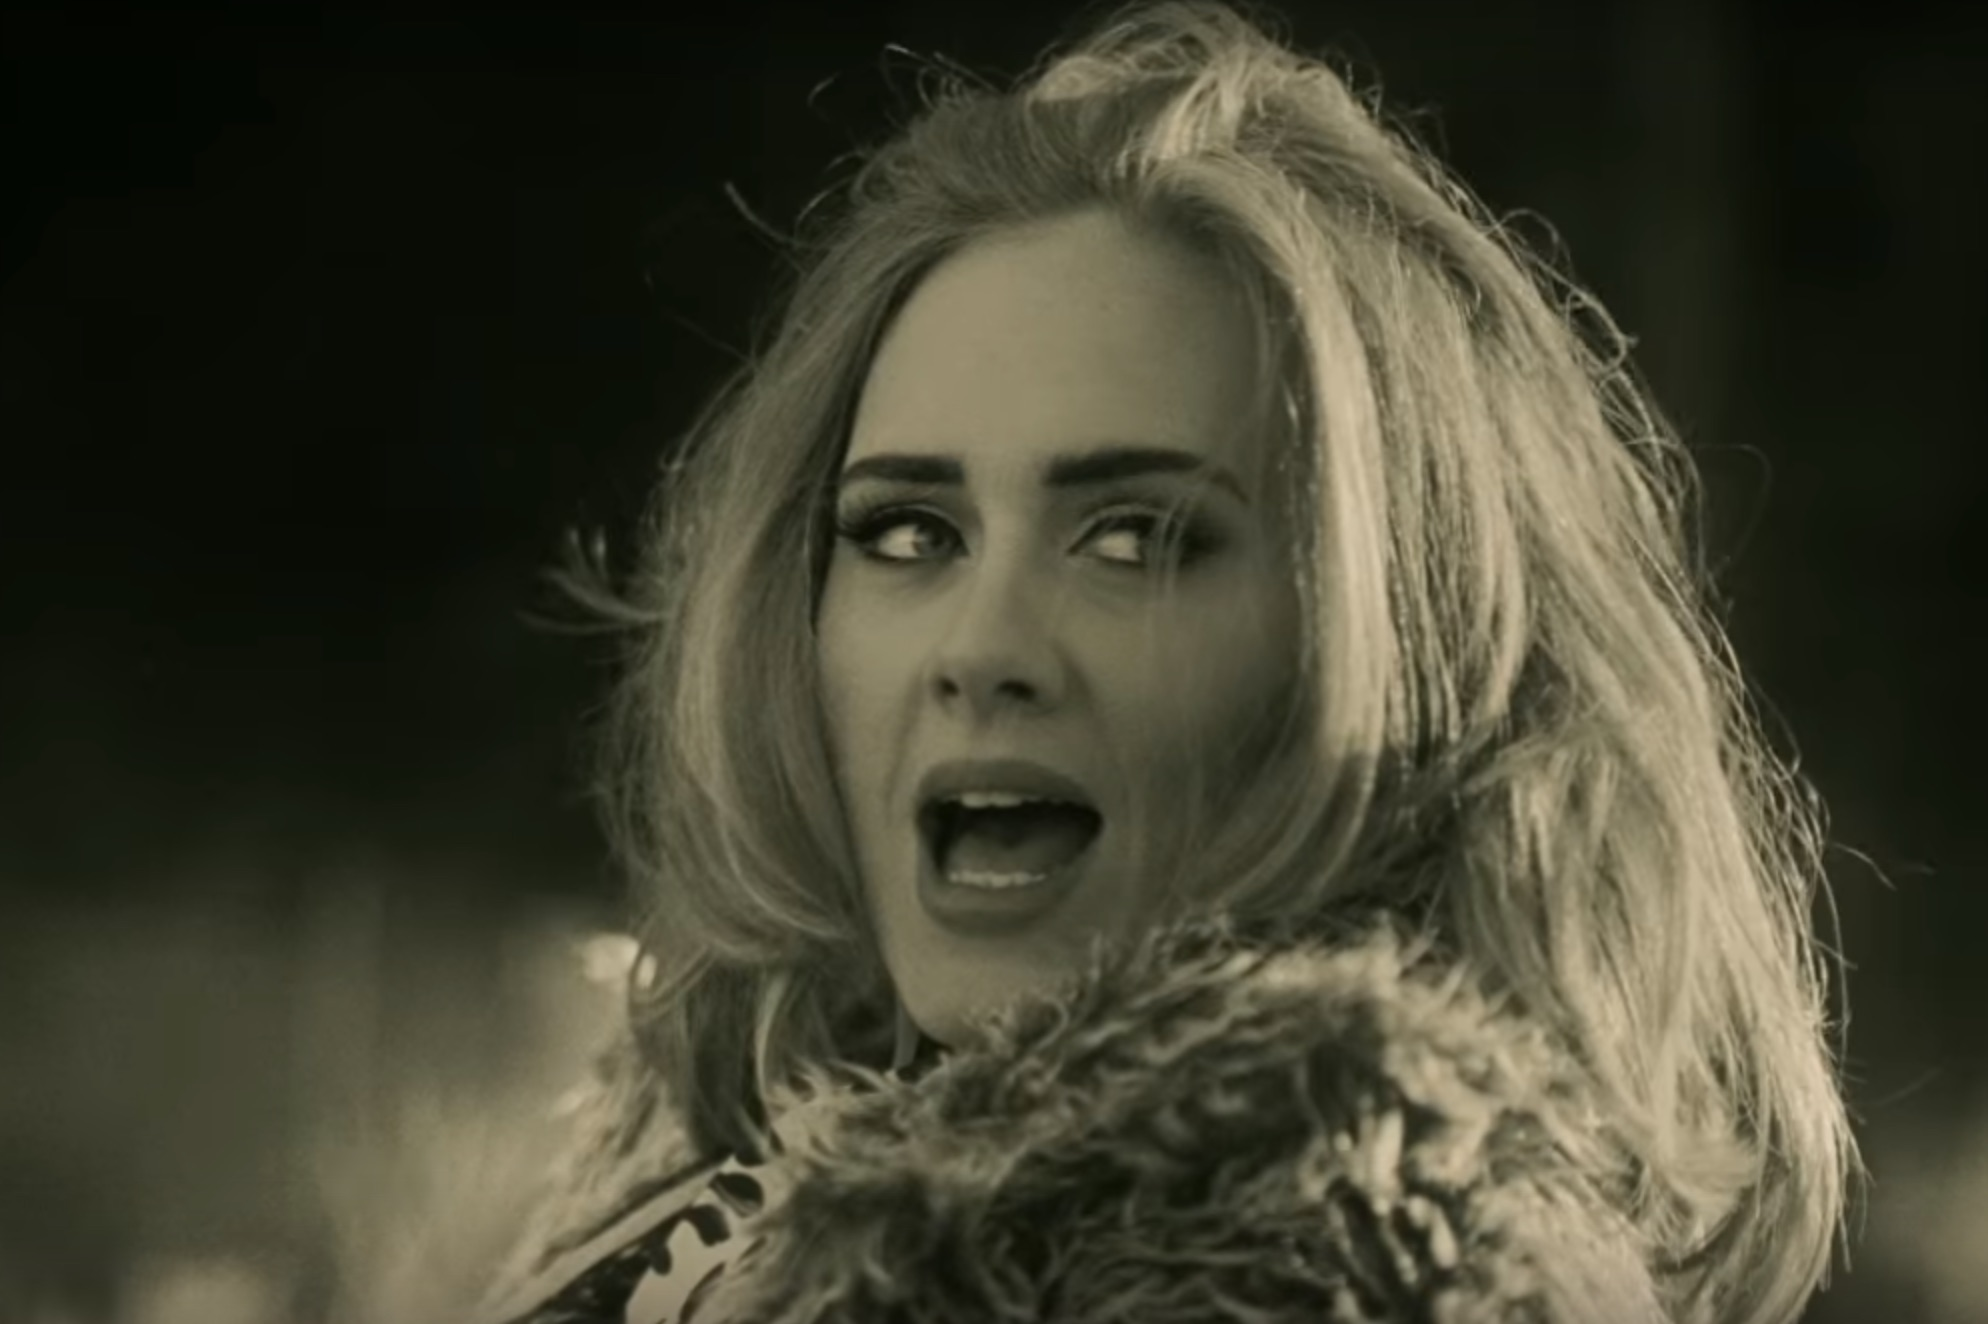 Drop everything and listen to Adele's glorious new song